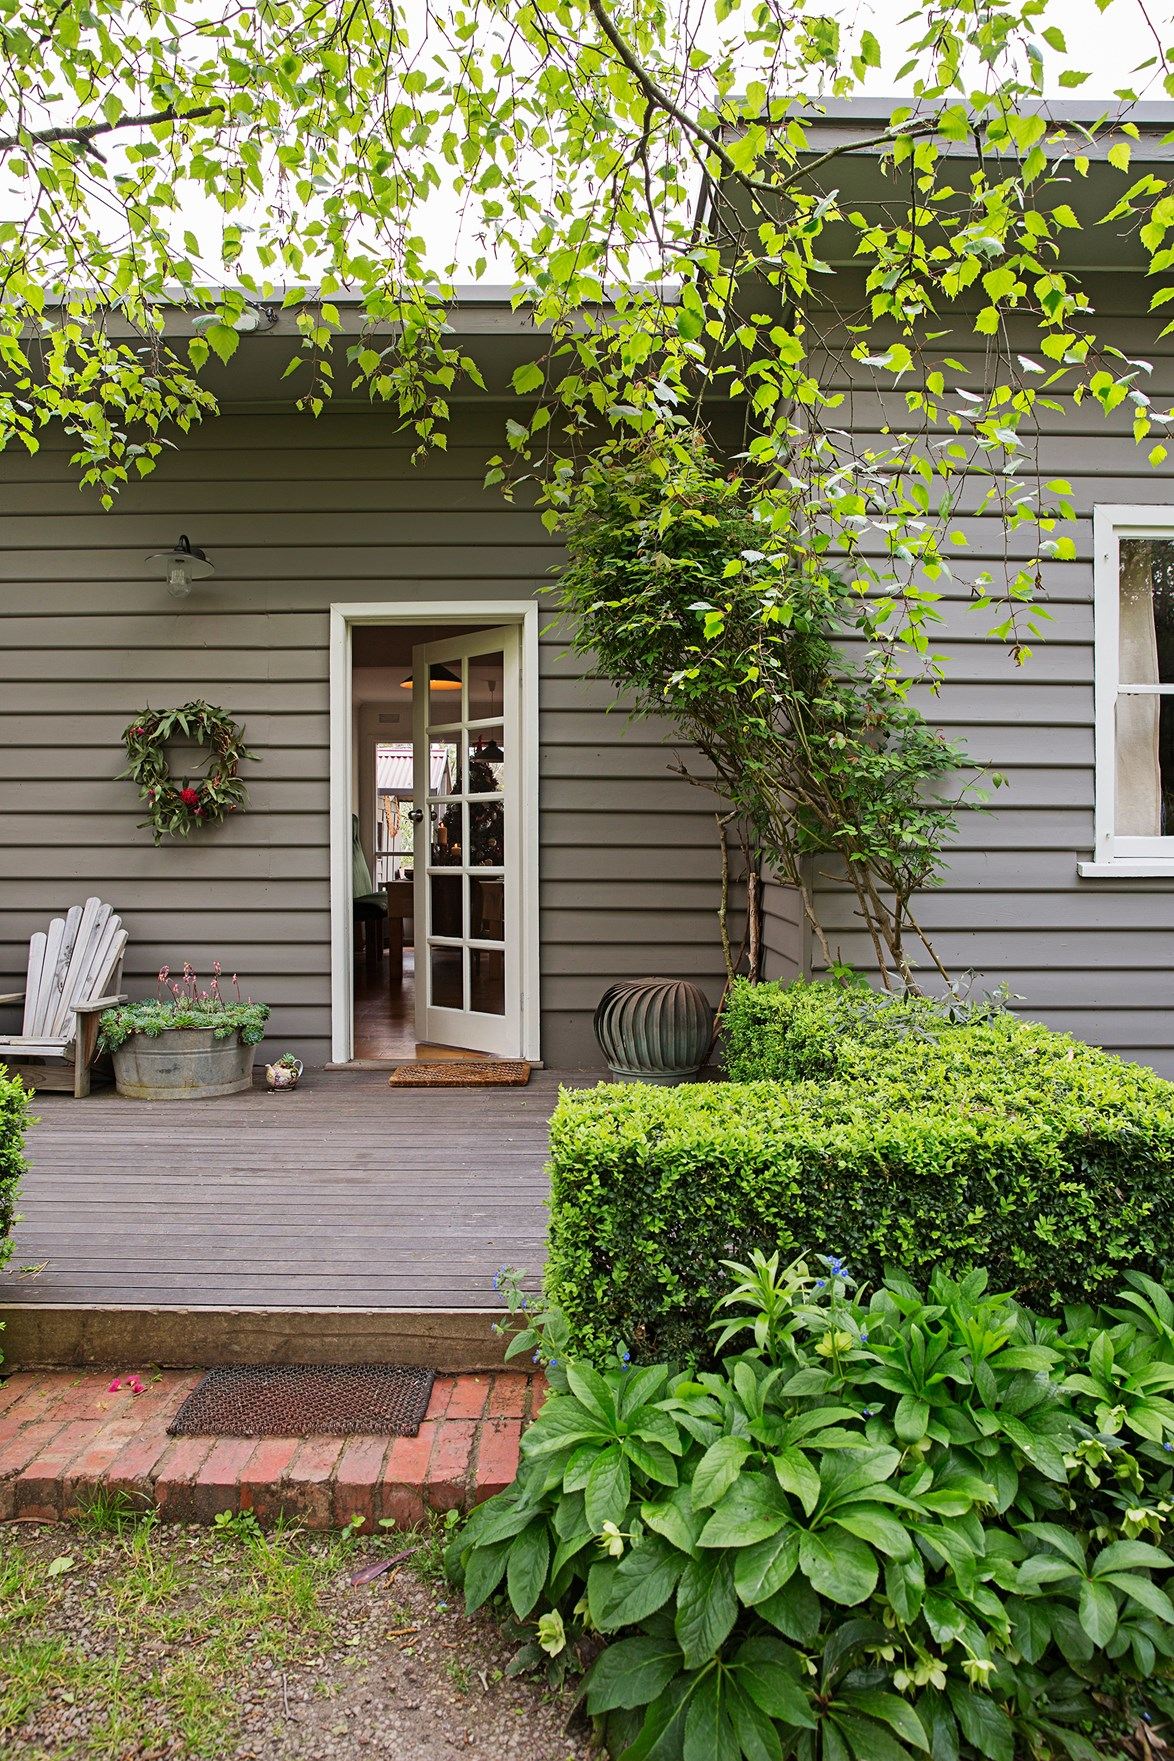 Originally seeking a house on several acres in Victoria's Mornington Peninsula, this 1940s weatherboard cottage proved impossible to resist. See more of this [charming cottage restoration](http://www.homestolove.com.au/a-cottage-restoration-in-rural-victoria-4364). *Photography: Katherine Jamison | Story: homes+*